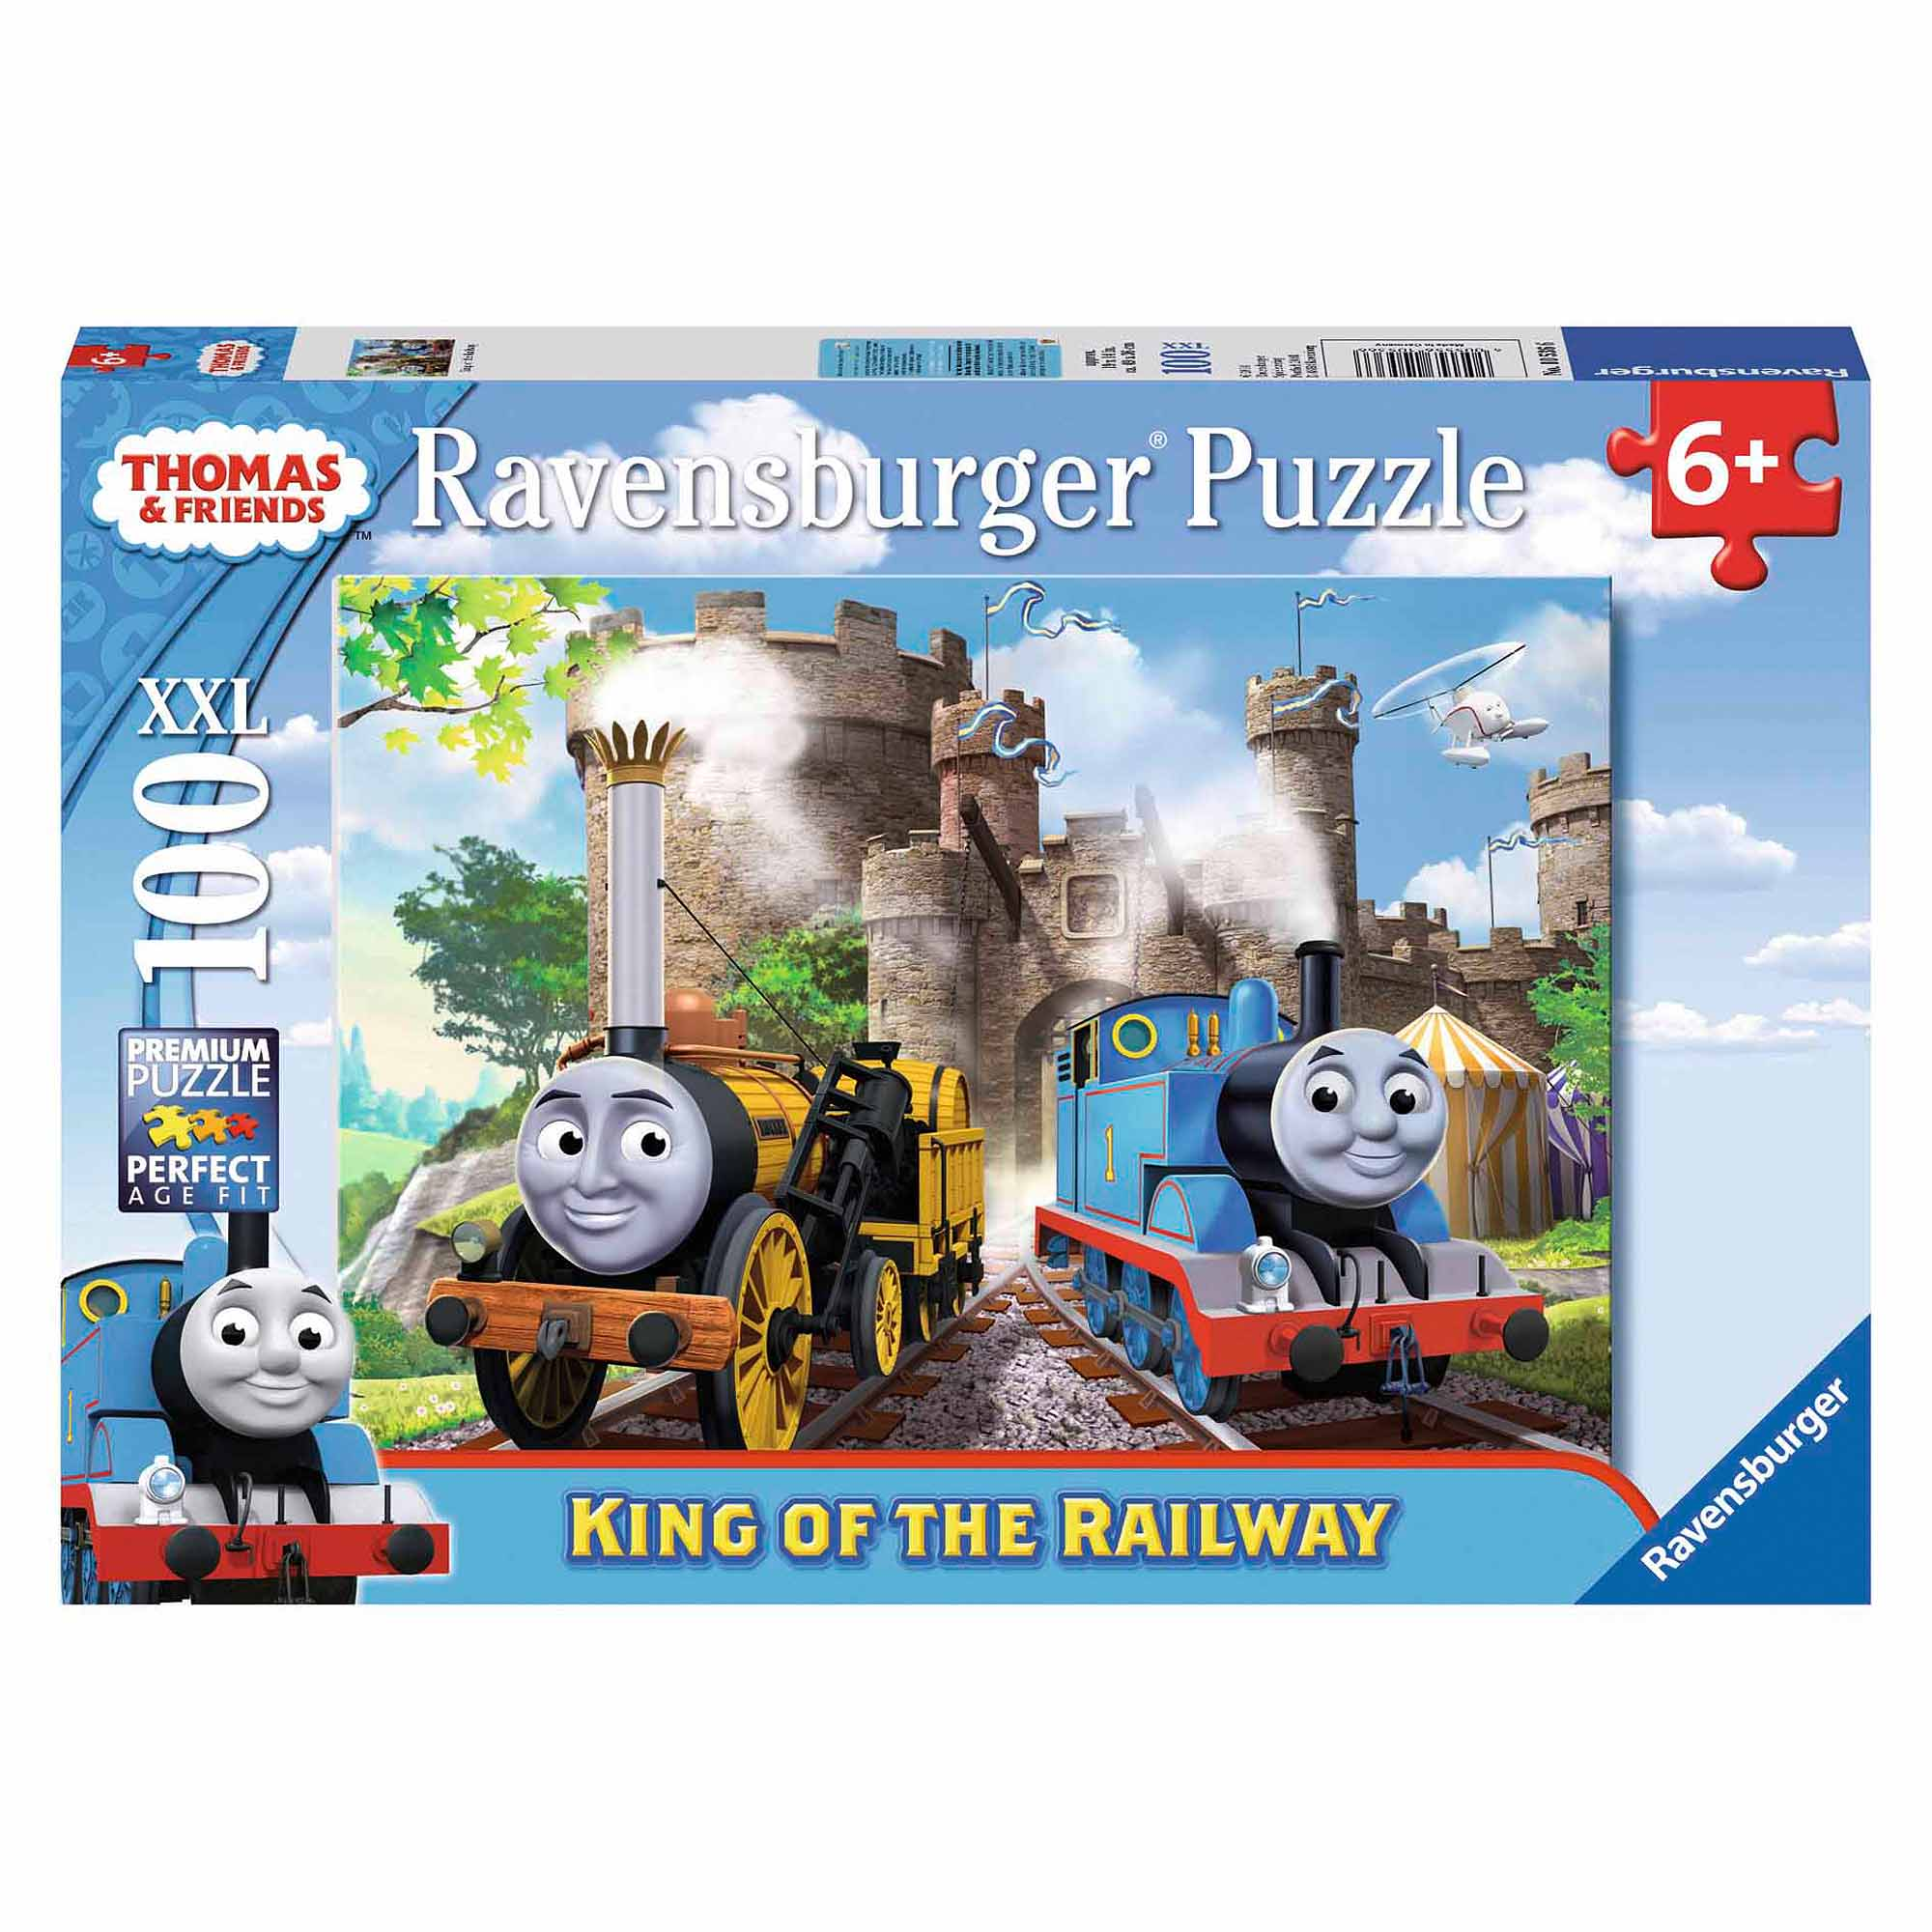 Thomas & Friends King of the Railway Puzzle, 100 Pieces